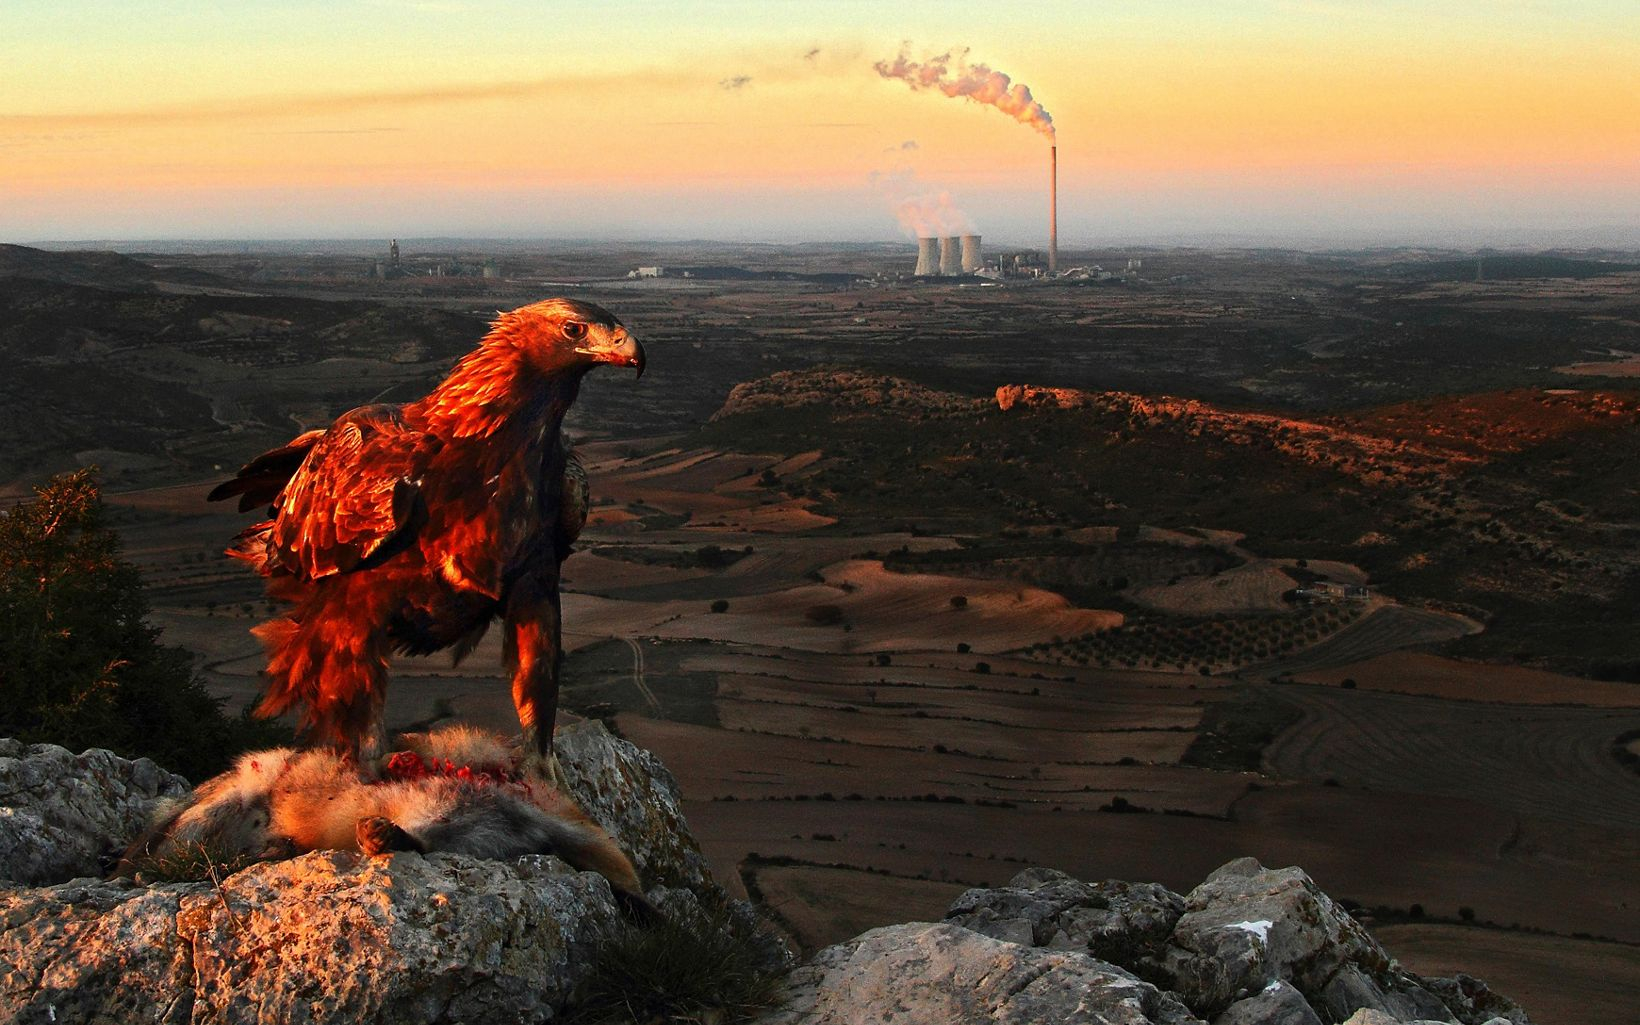 A male golden eagle feeds on a red fox. Behind stands the Andorra thermal power station (Aragon, Spain)